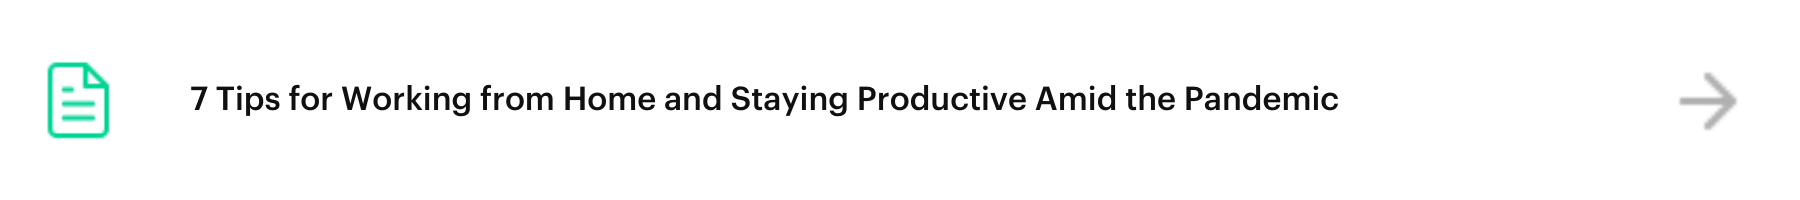 Related-article-about-how-to-be-productive-at-home